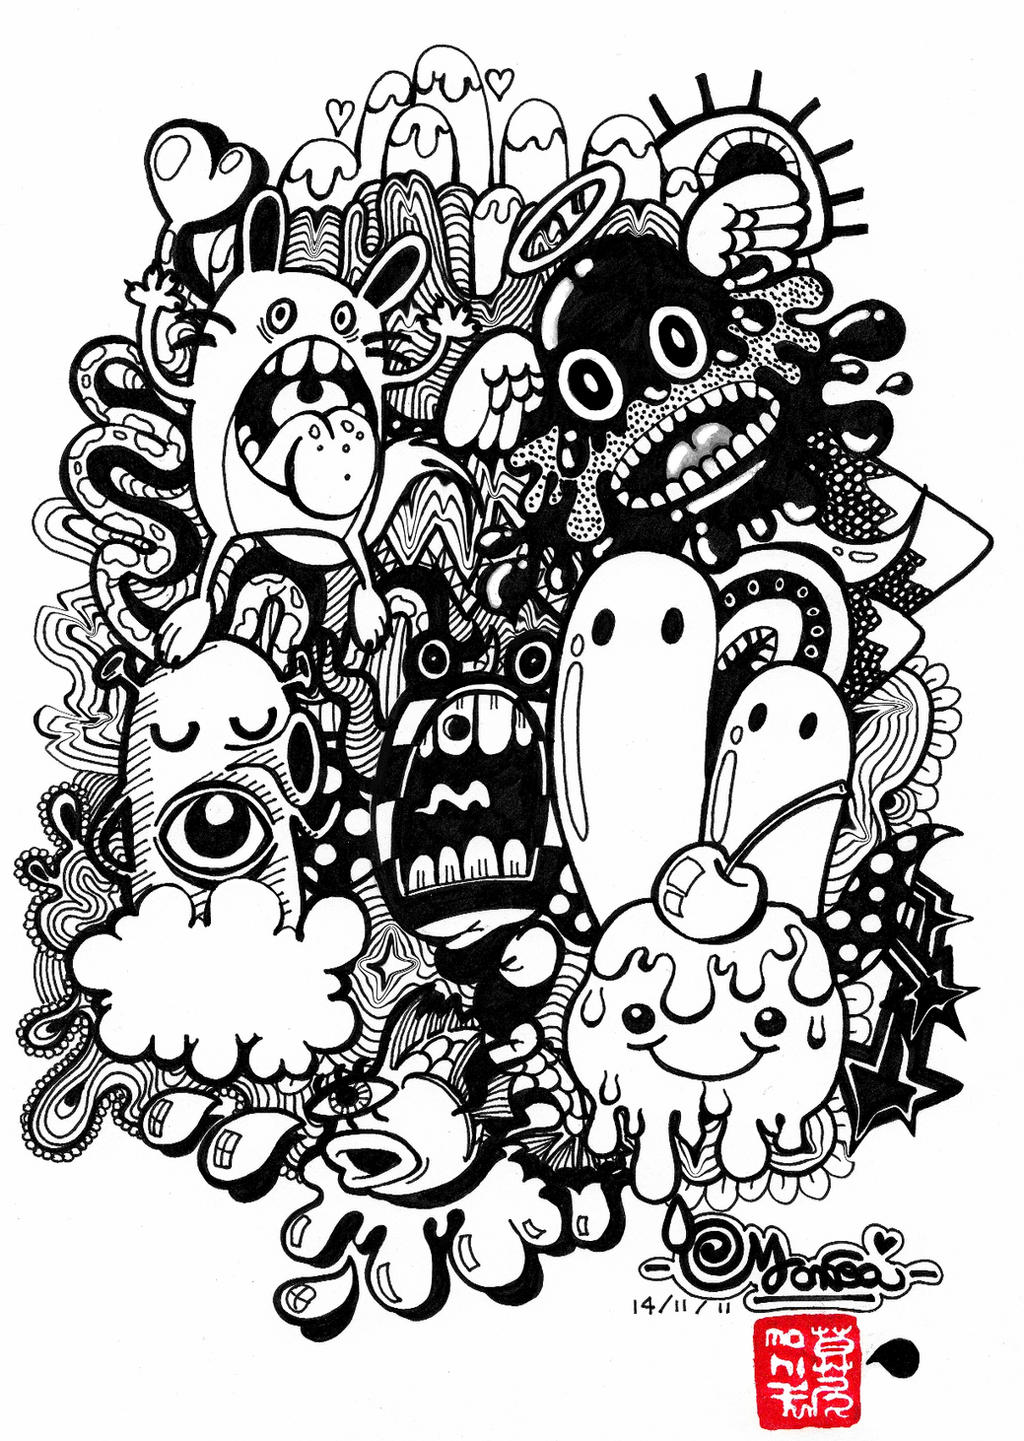 doodle pages doodle art free to color for kids doodle art kids pages doodle